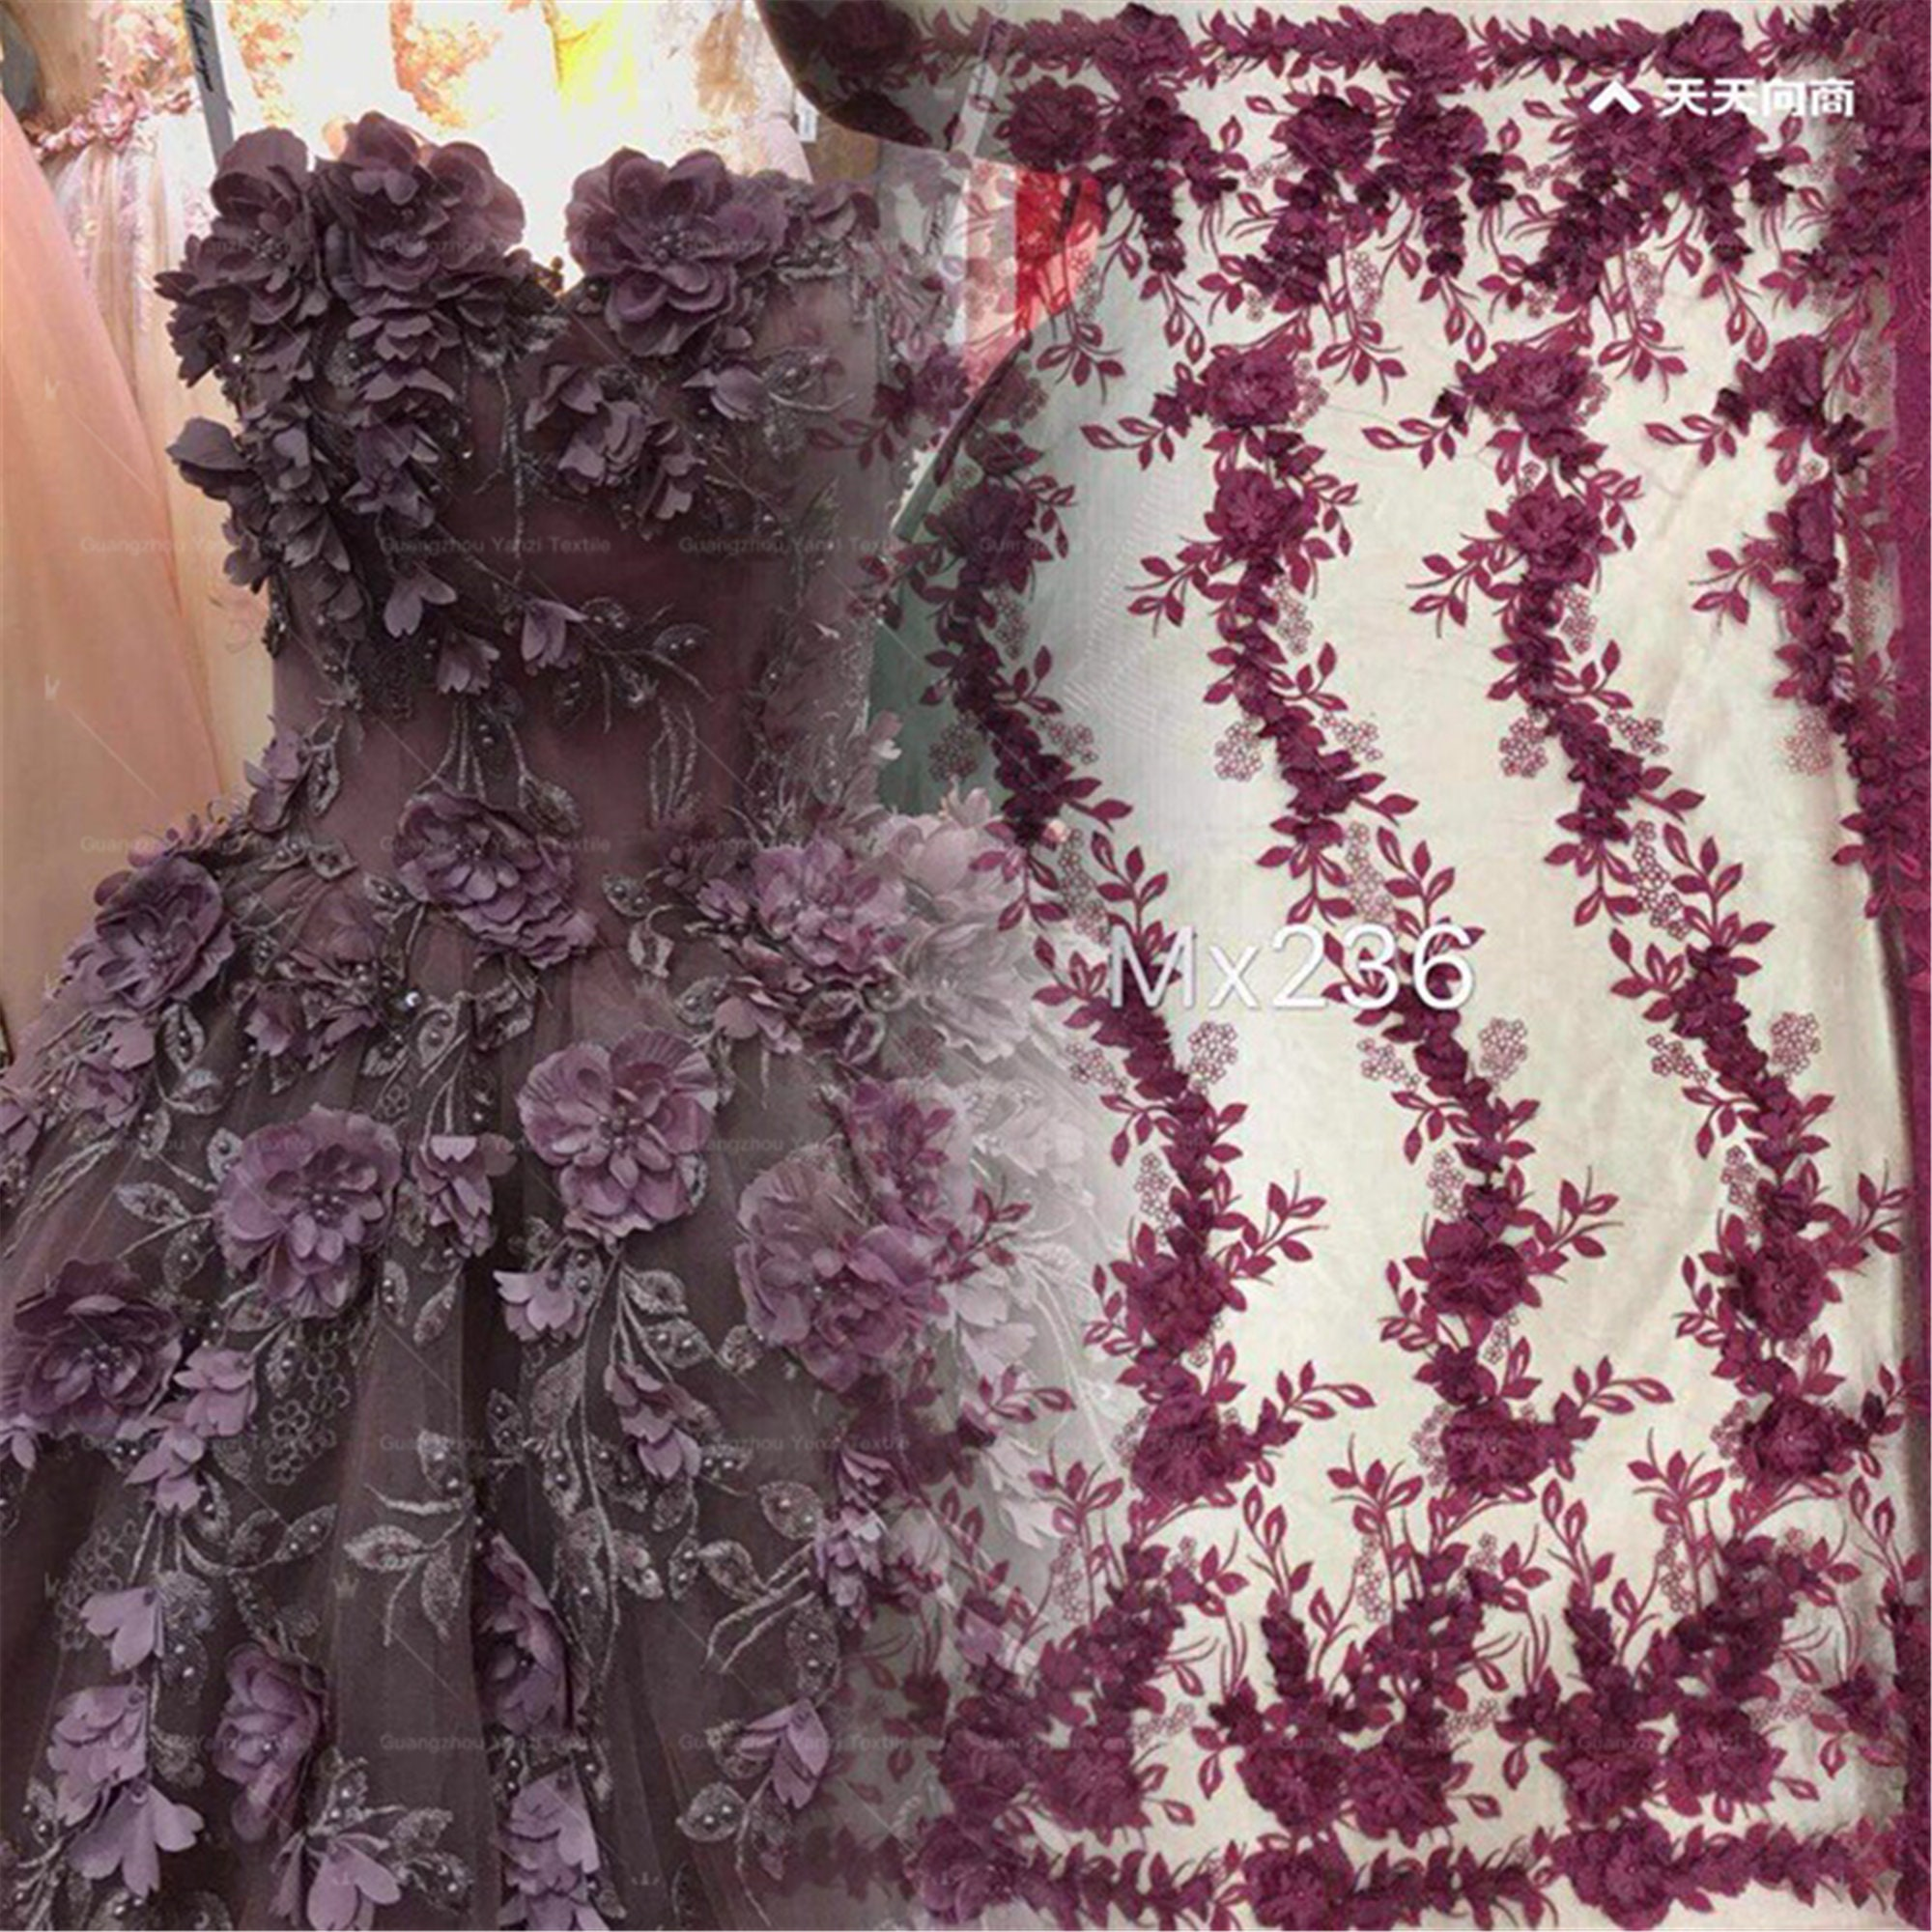 High Quality Embroidery Lace Fabric Tulle Embroidery Lace Fabric Evening Dress Fabric Prom Gown Lace Fabric By The Yard